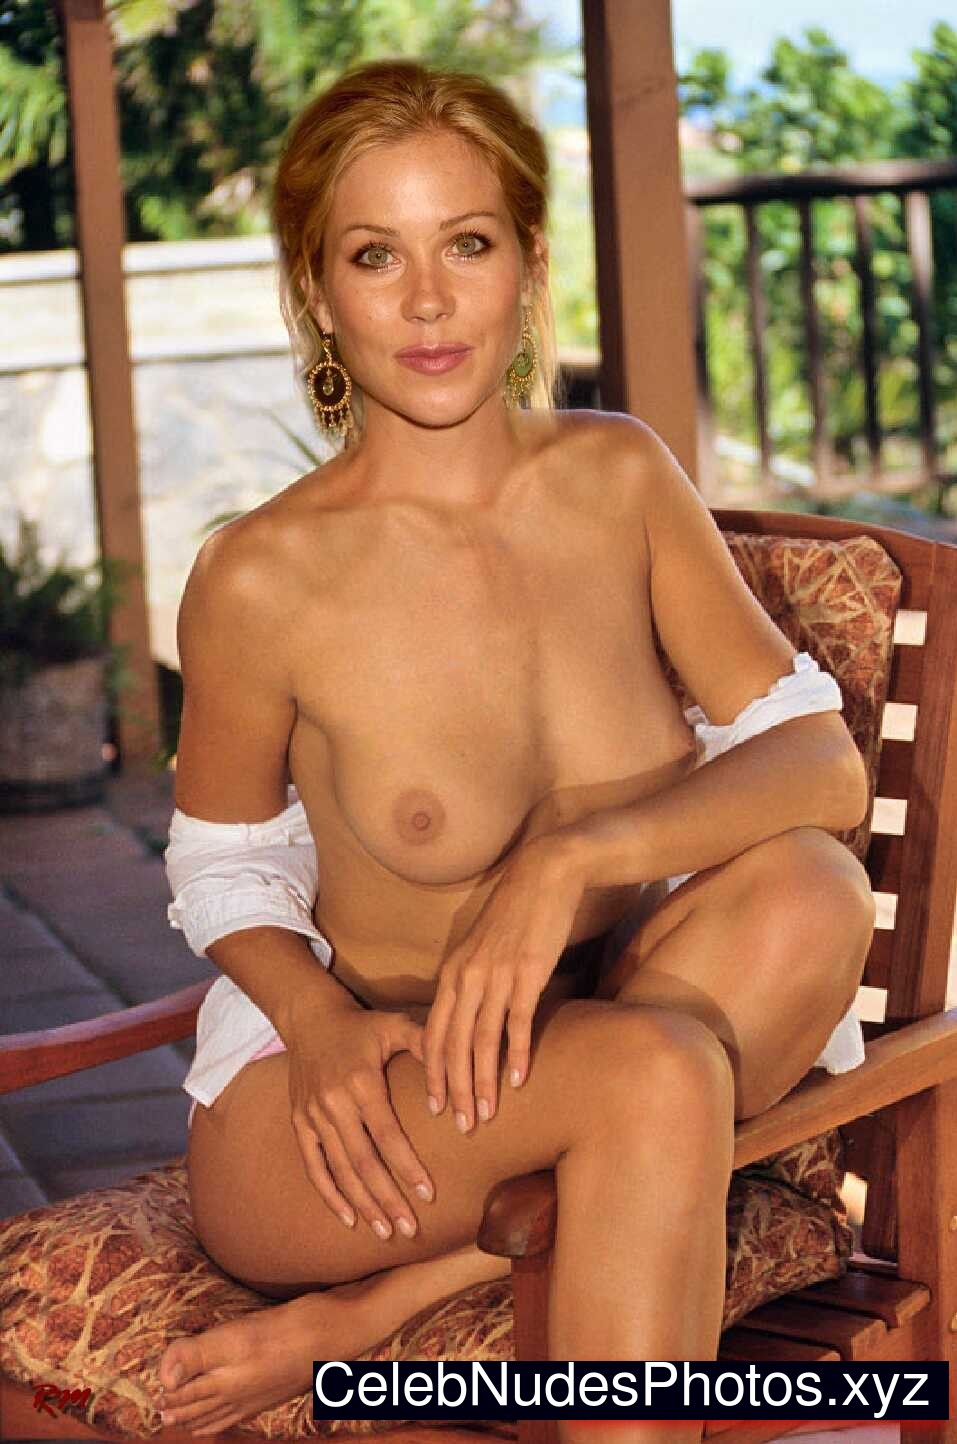 Christina Applegate Nude Celebrity Picture sexy 11